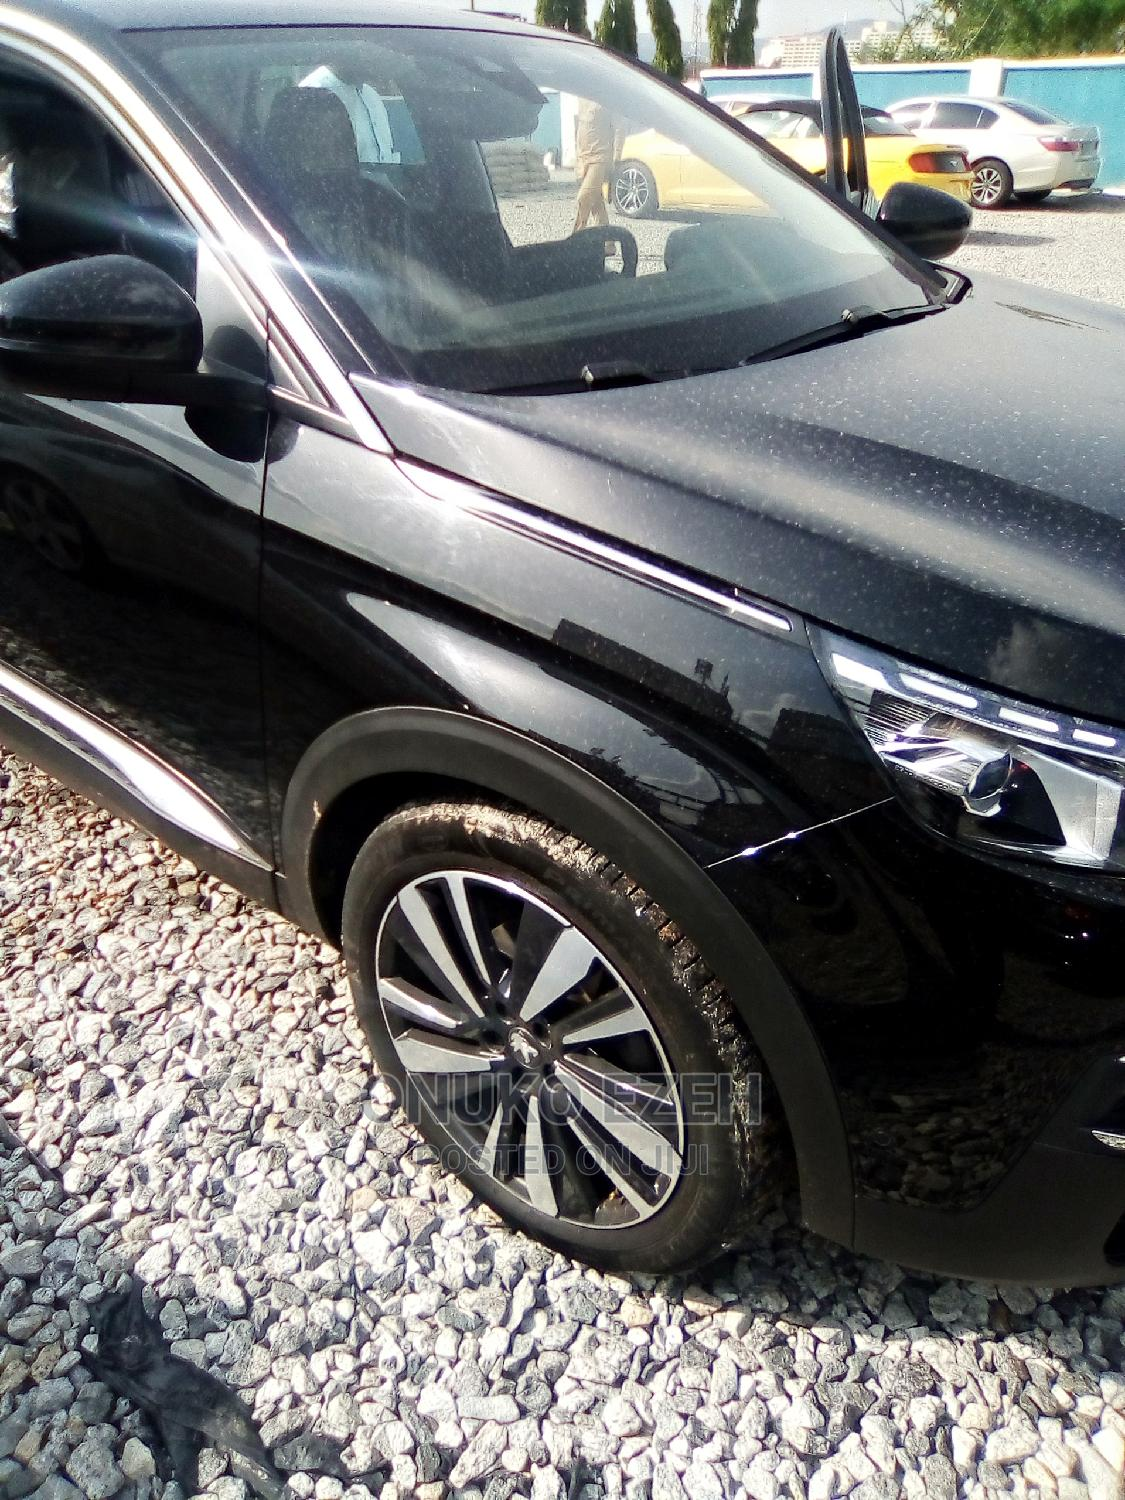 New Peugeot 3008 2020 Black | Cars for sale in Central Business District, Abuja (FCT) State, Nigeria